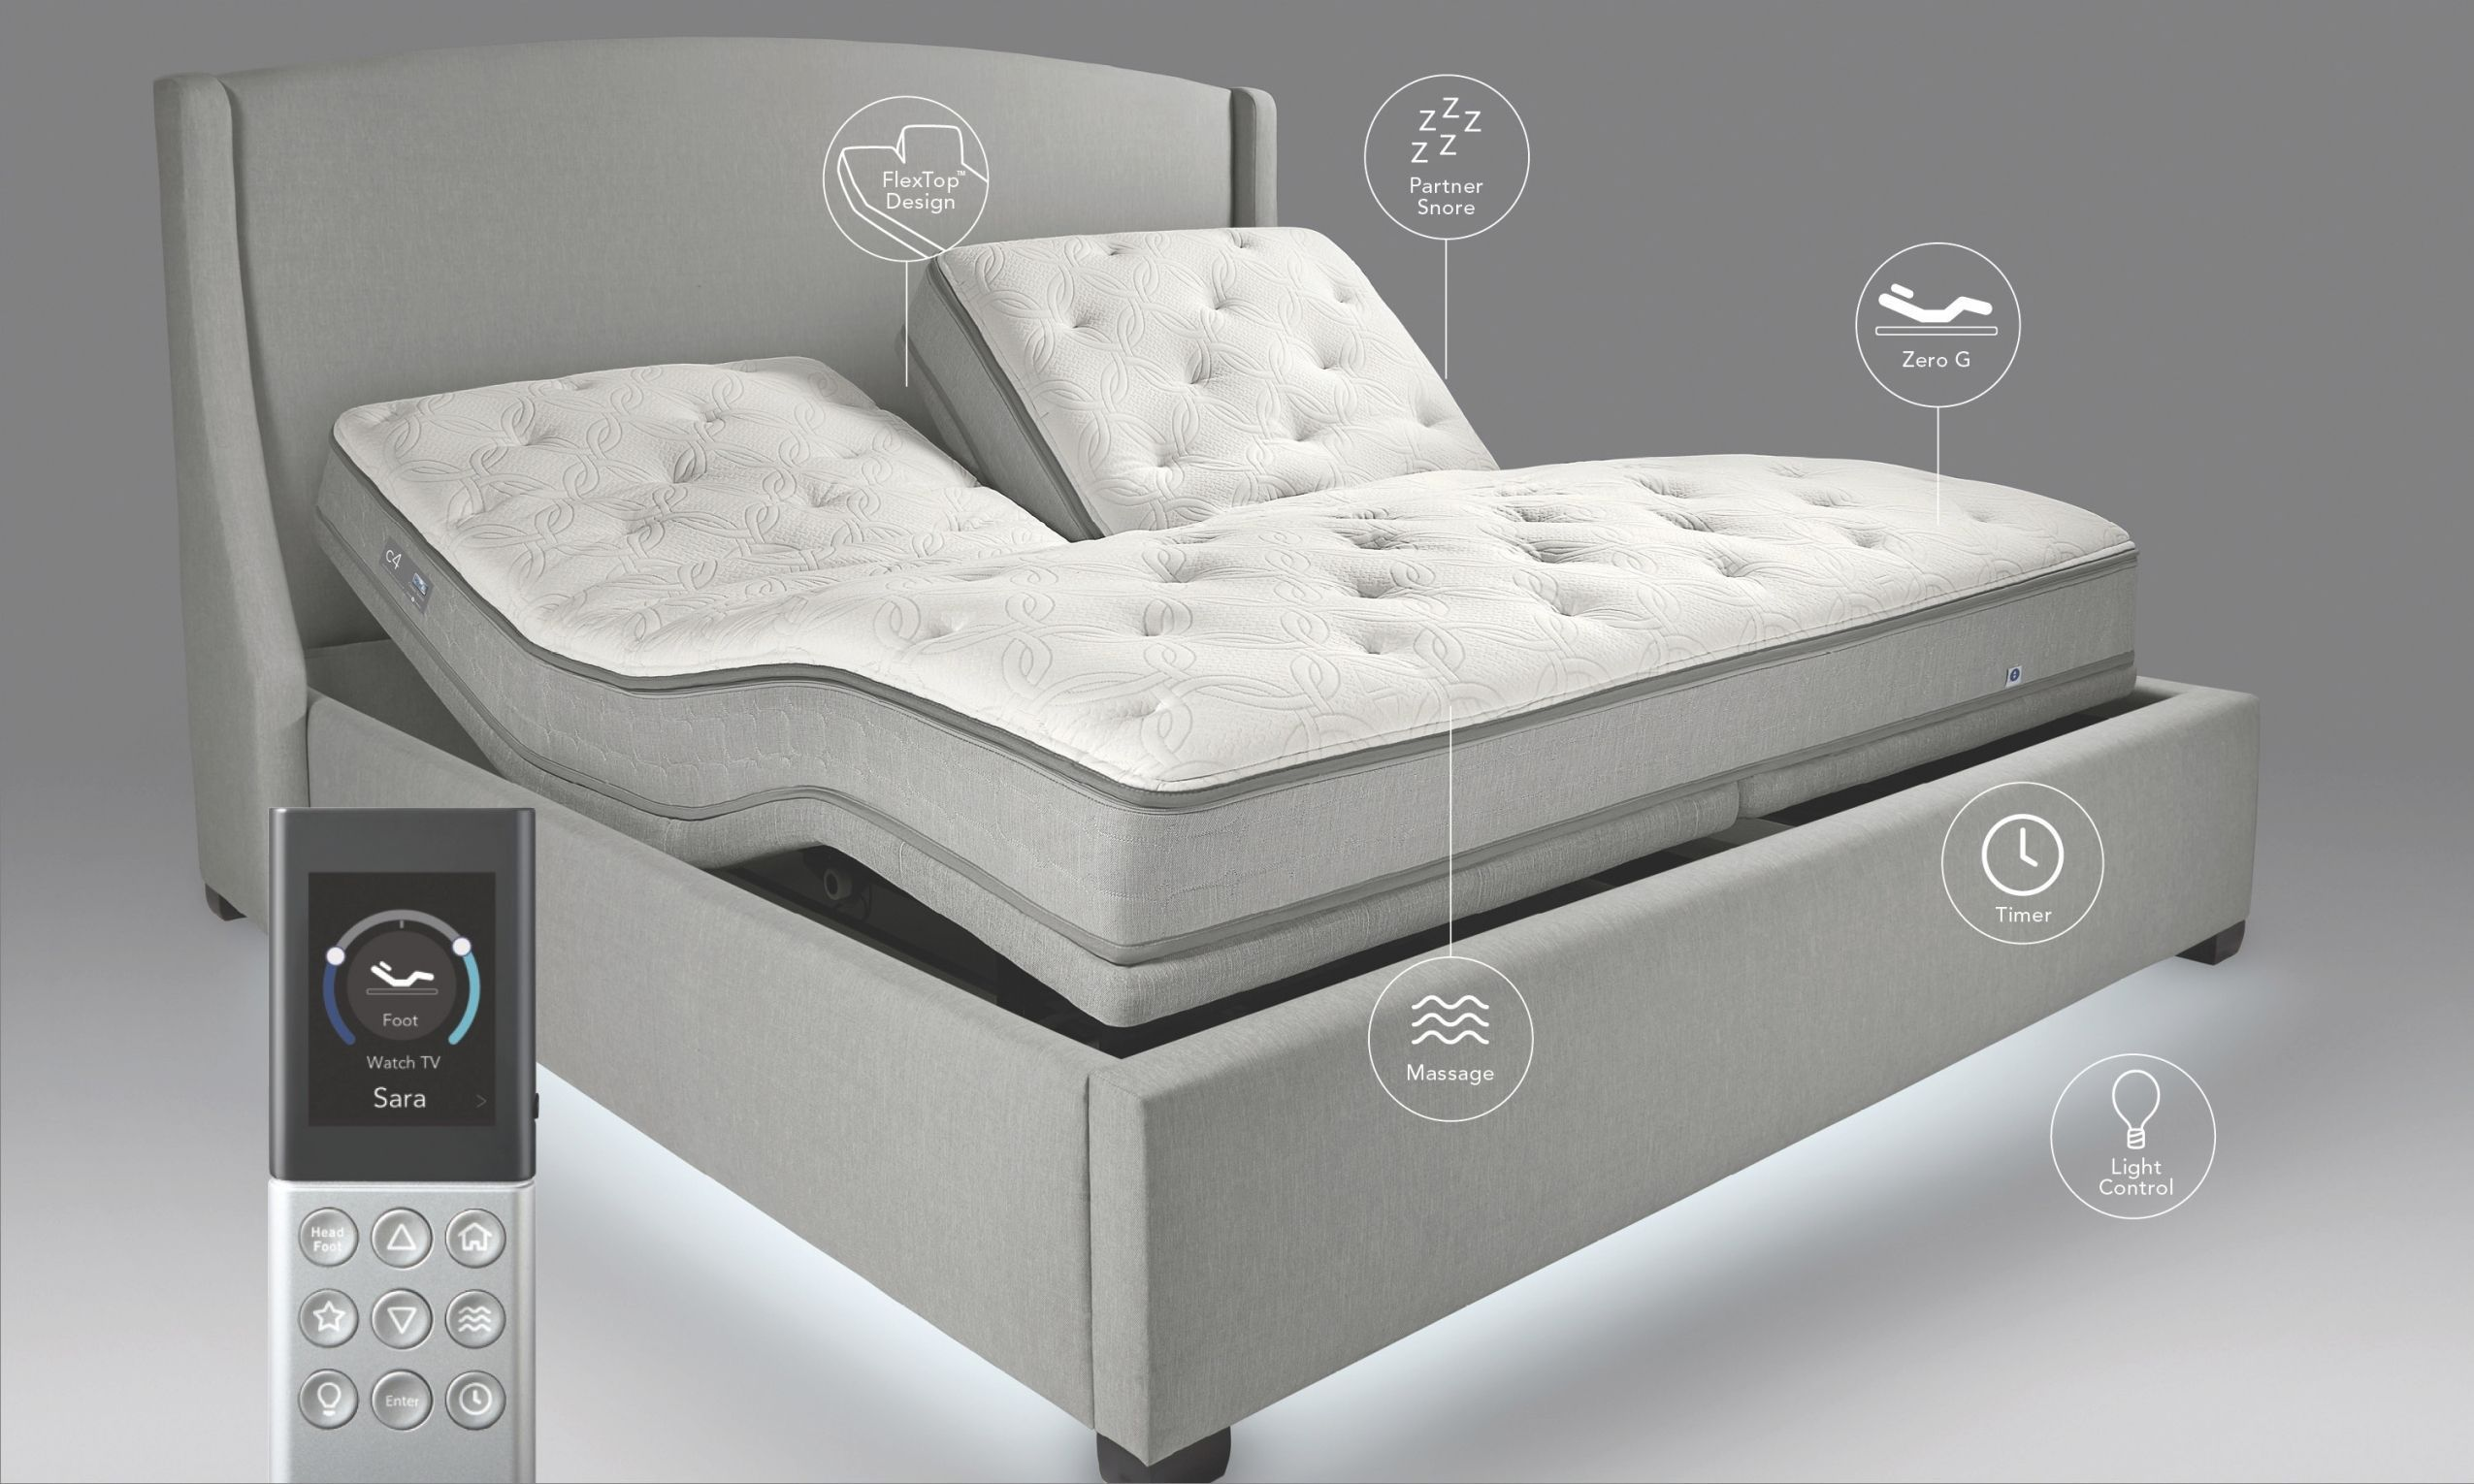 Sleeping On A Sleep Number Bed With Images Sleep Number Bed